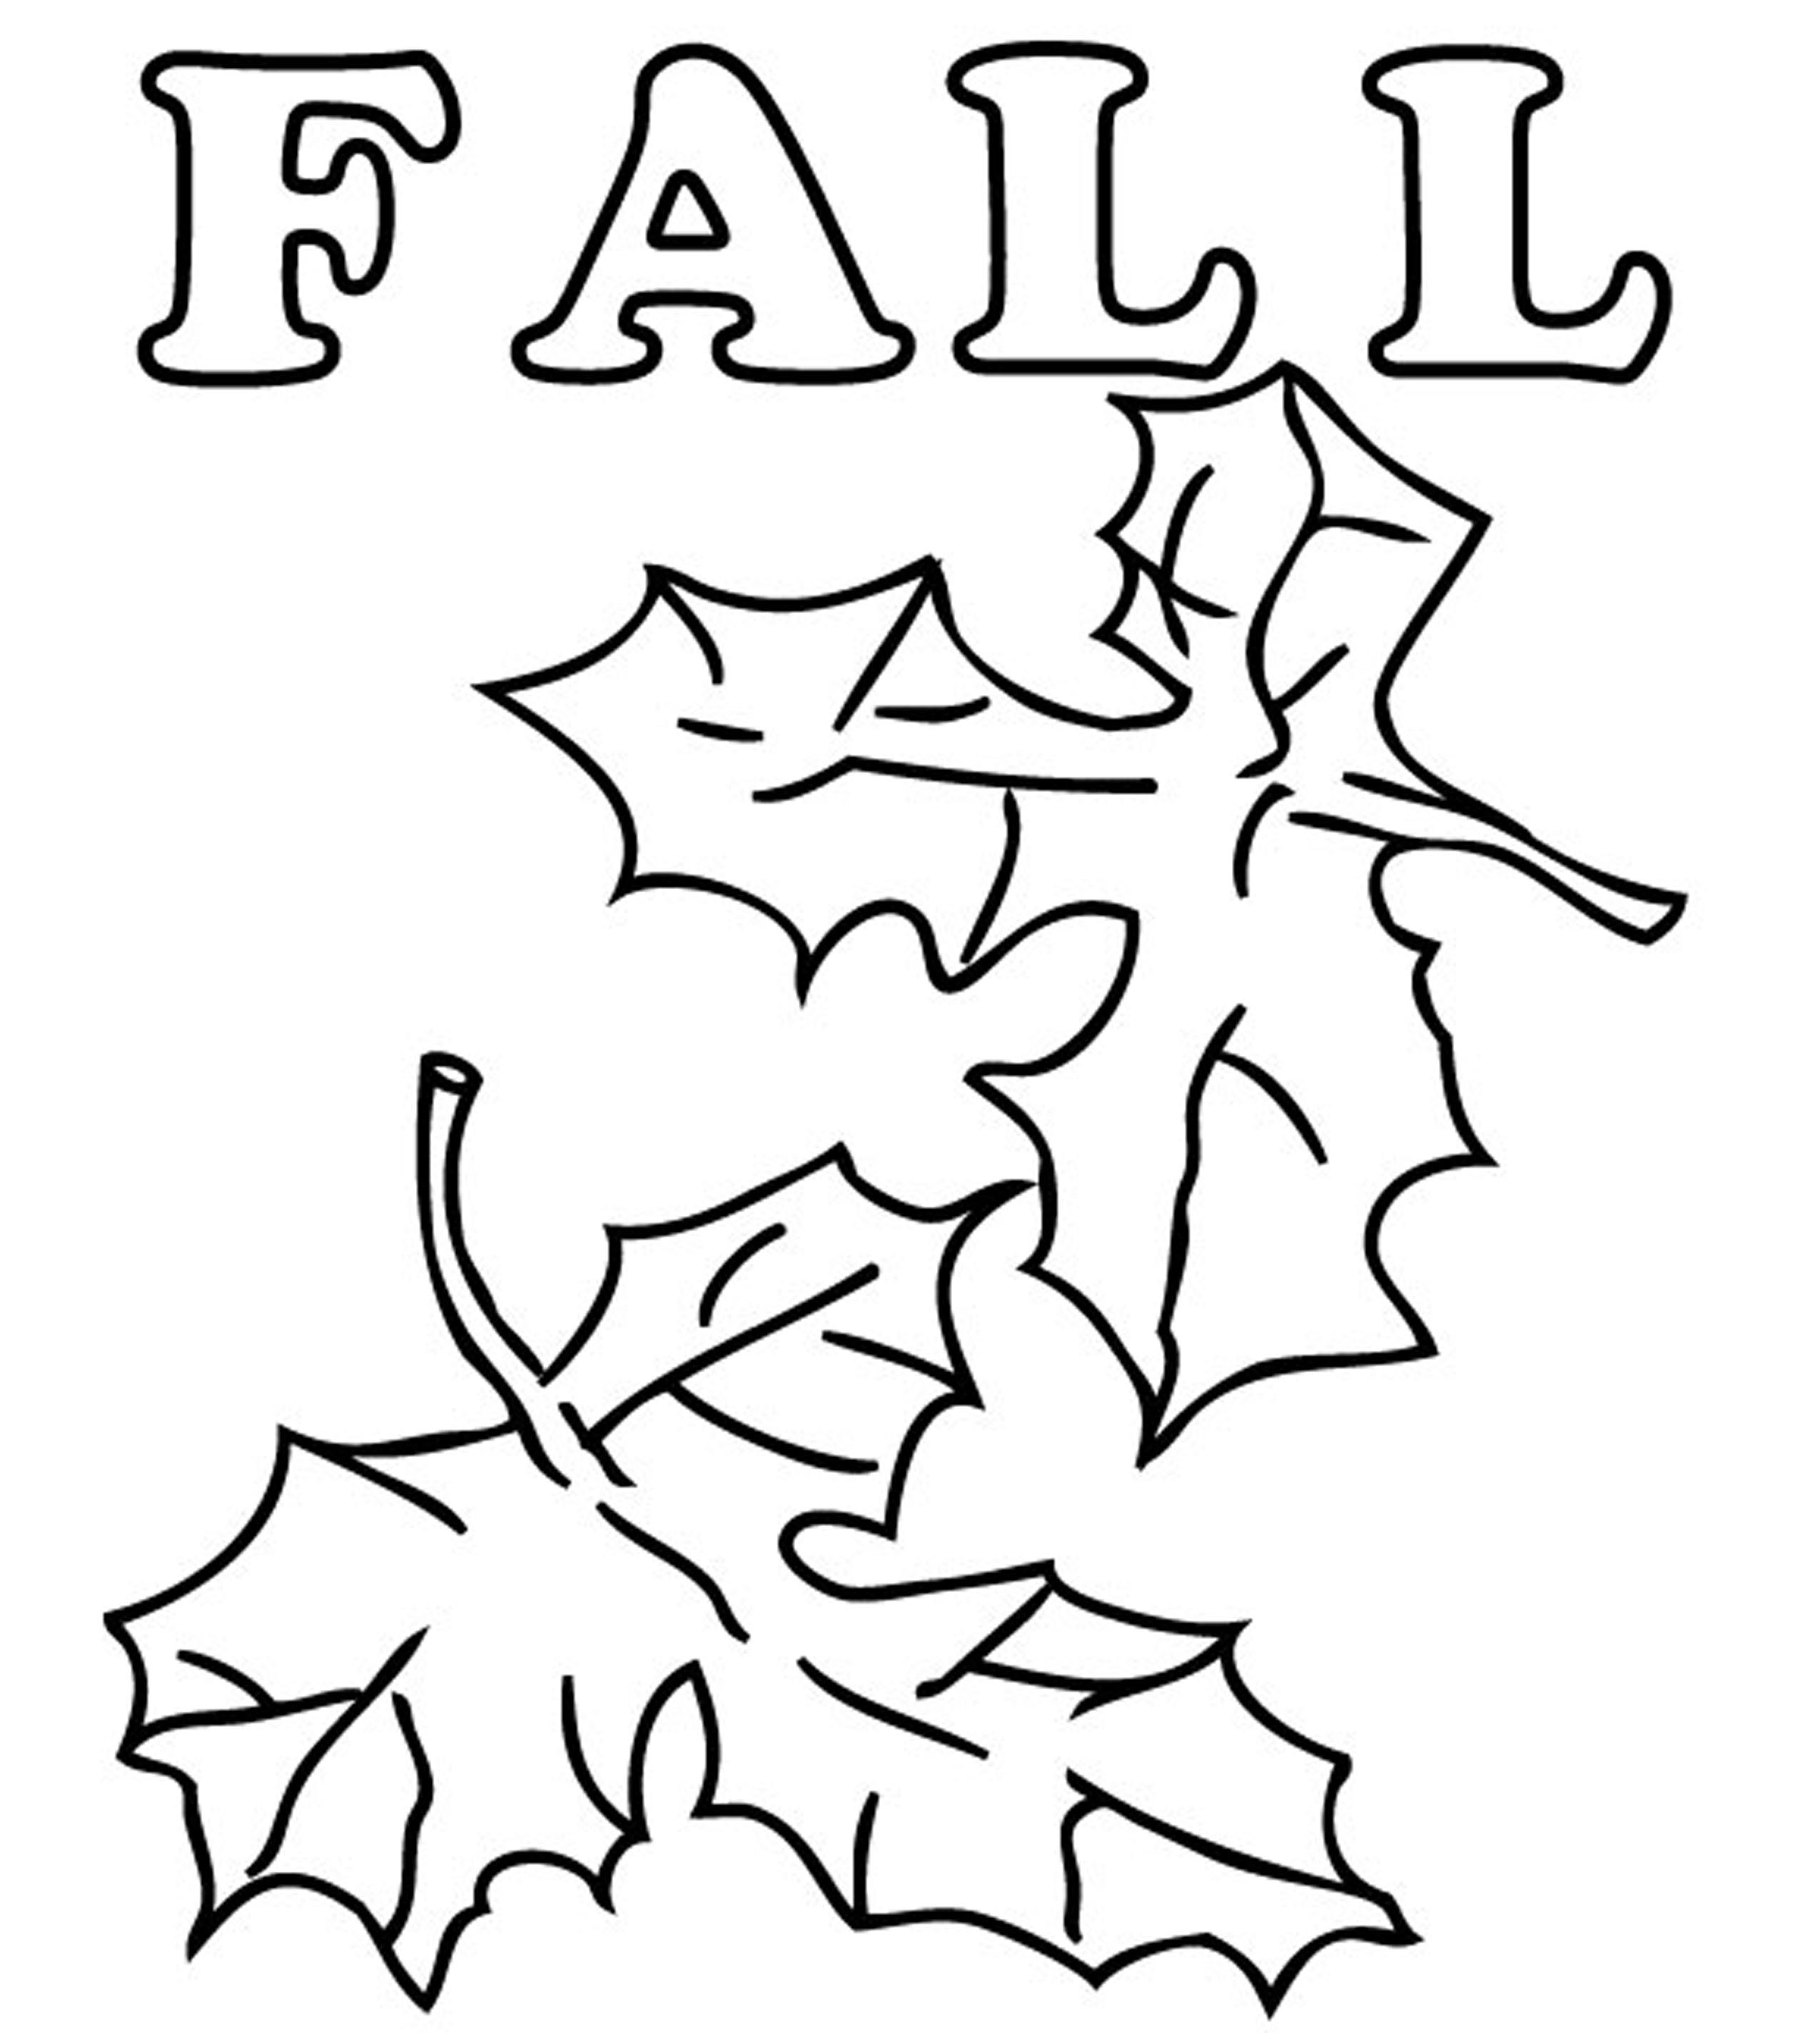 2550x2849 Imagination Fall Leaves Coloring Sheets Leaf P